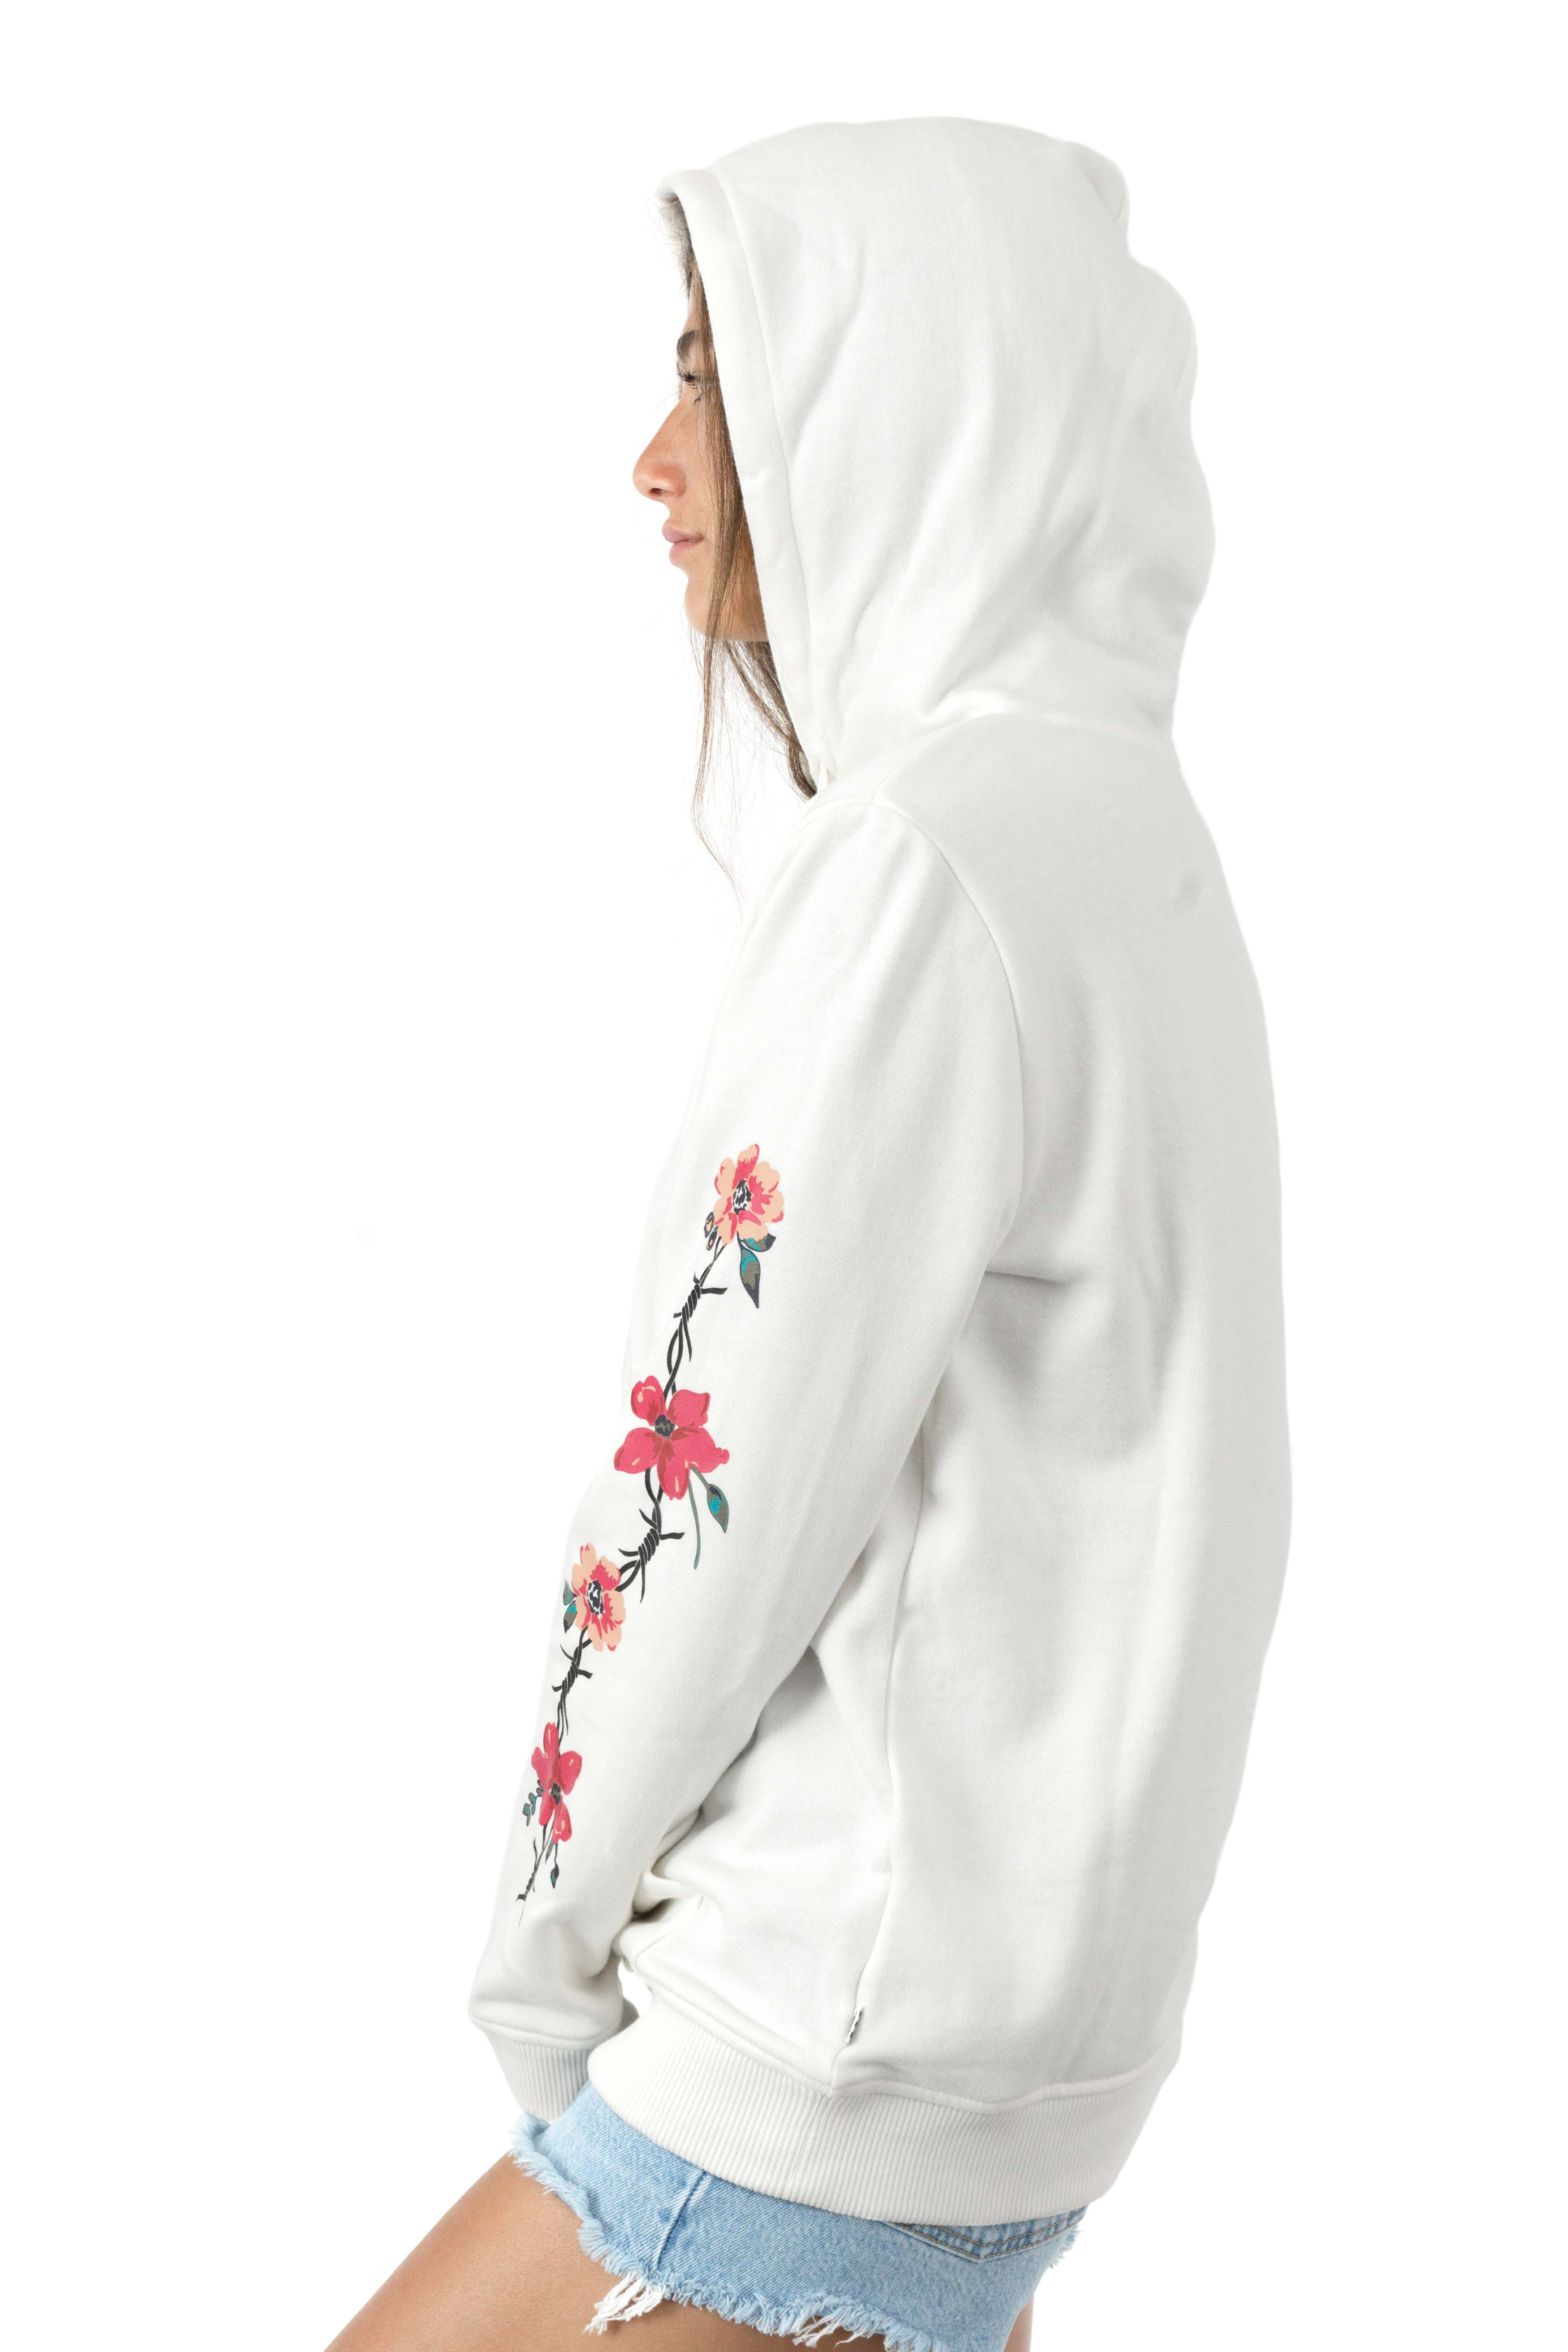 Barbed Floral Pullover Hoodie - Marshmallow  2